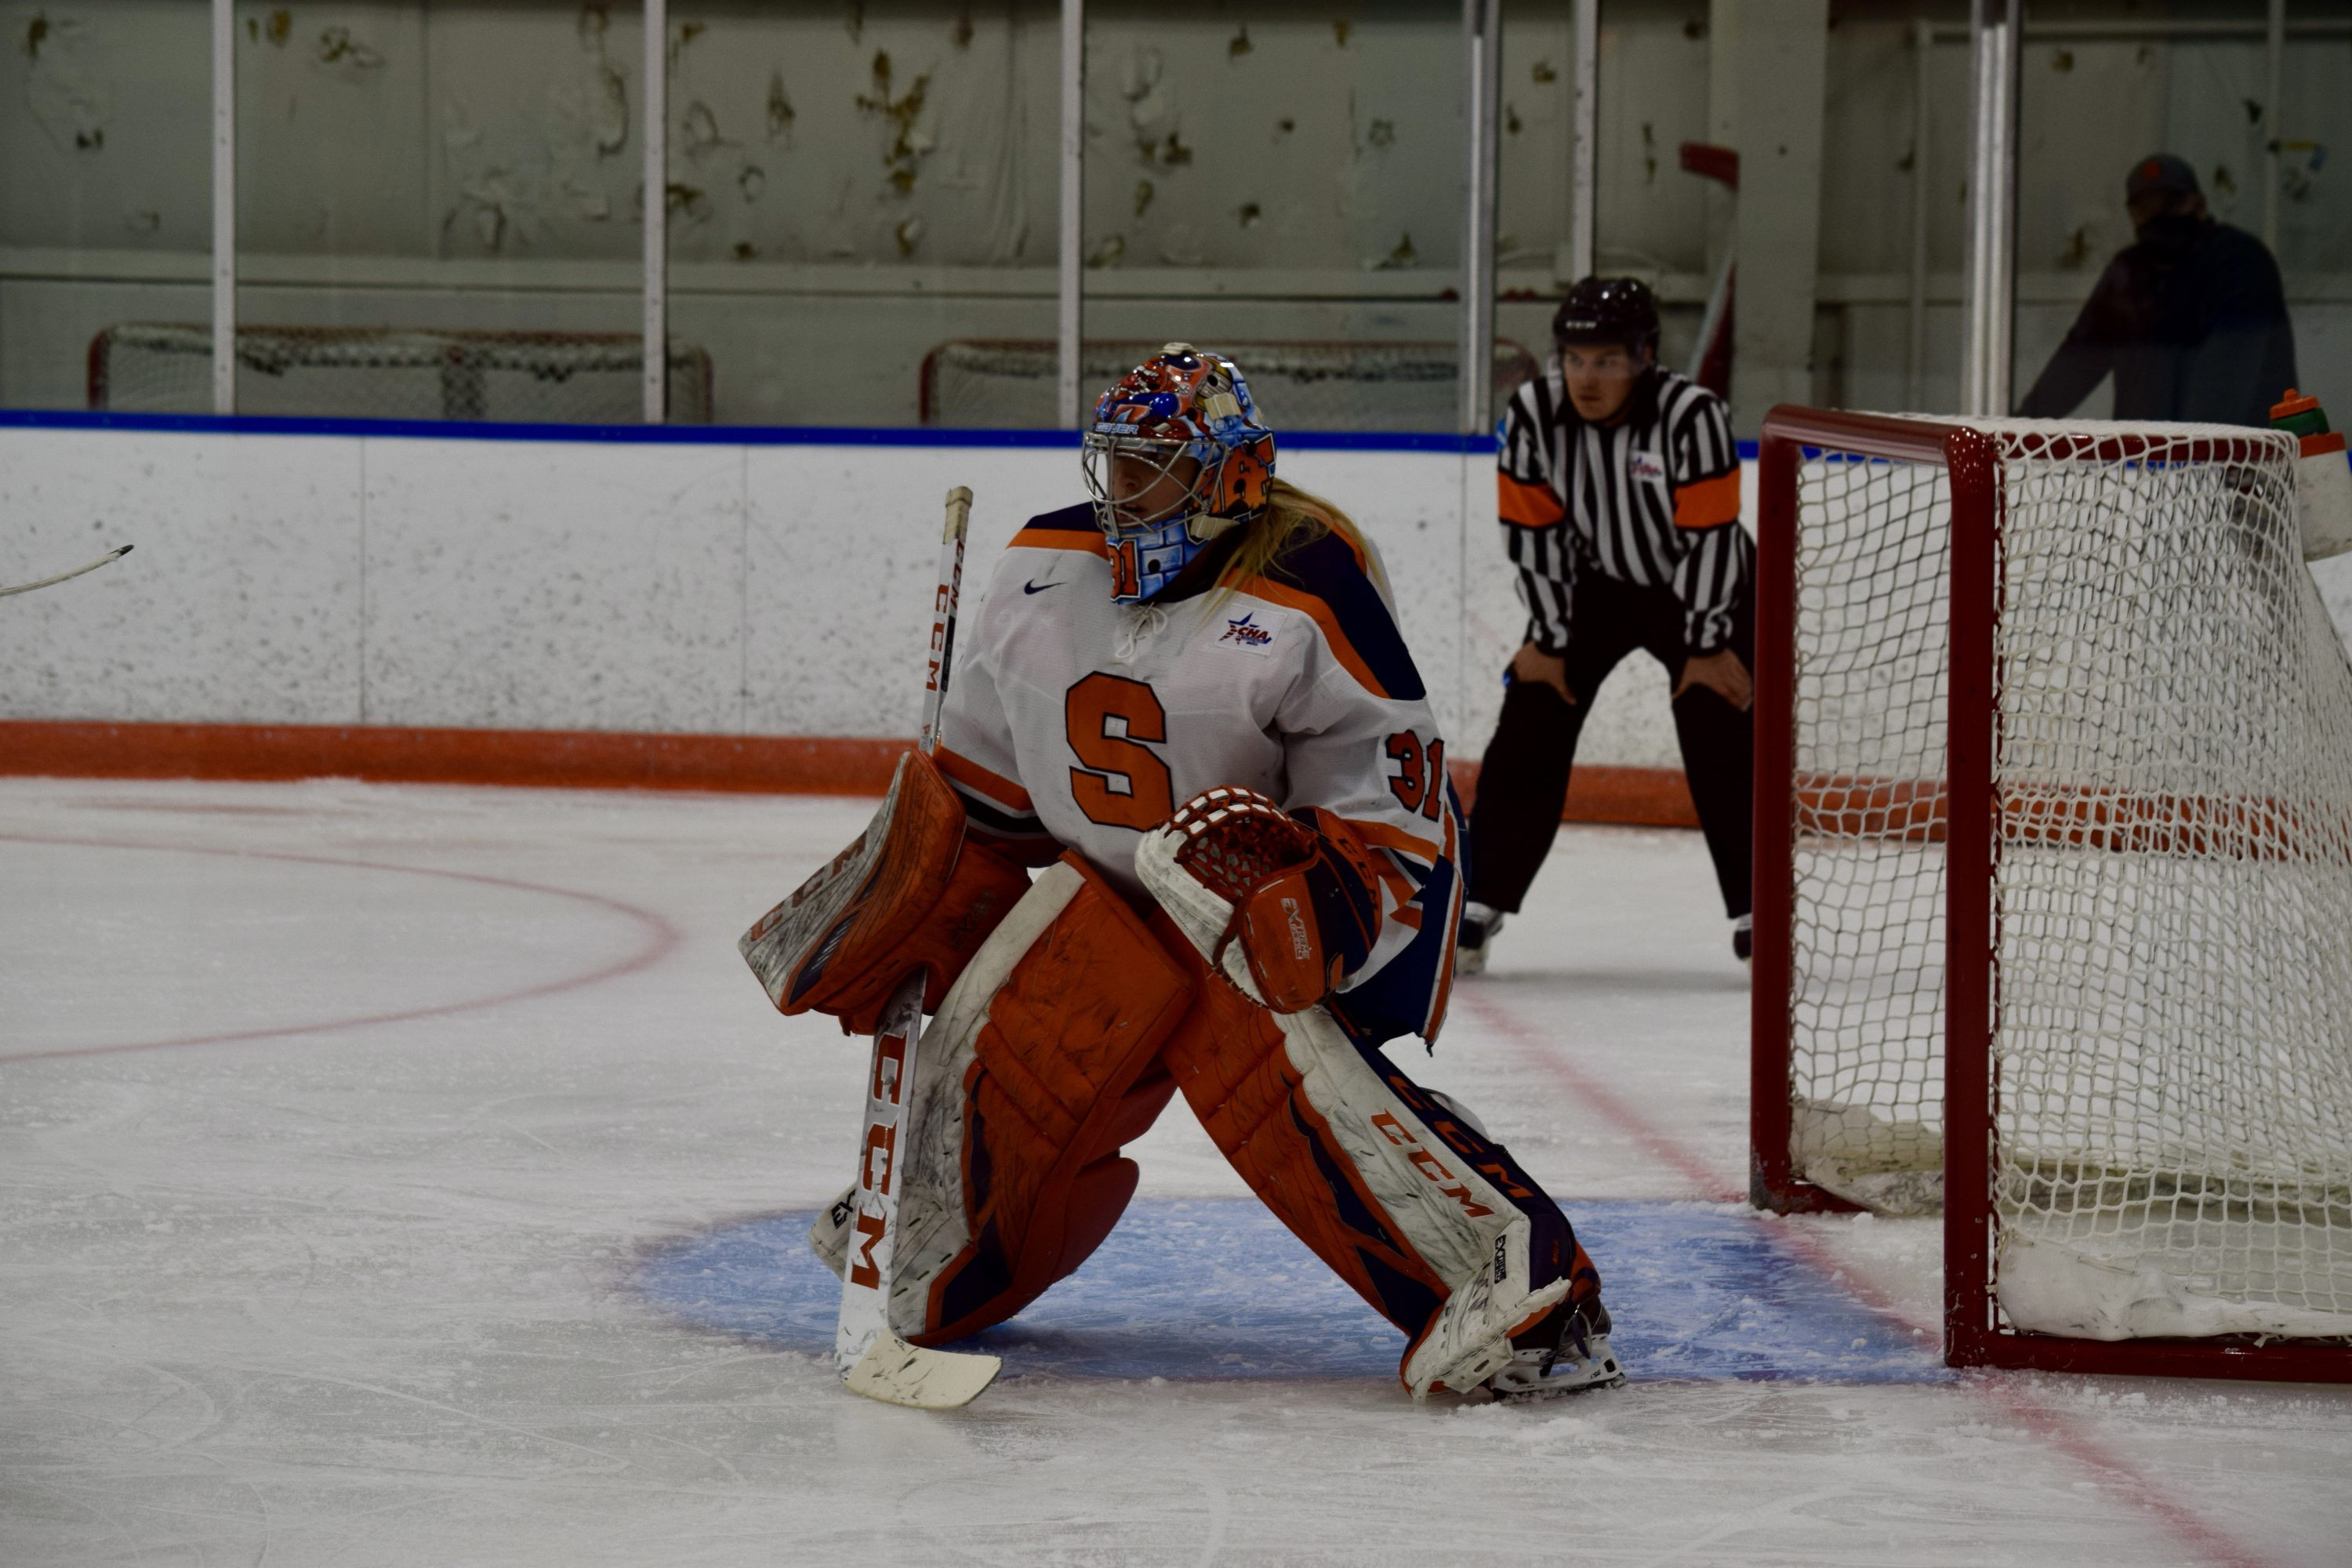 Syracuse goaltender prepares to defend the Orange goal before the faceoff during a game against Penn State on Dec. 11, 2020 at Tennity Ice Pavillion.